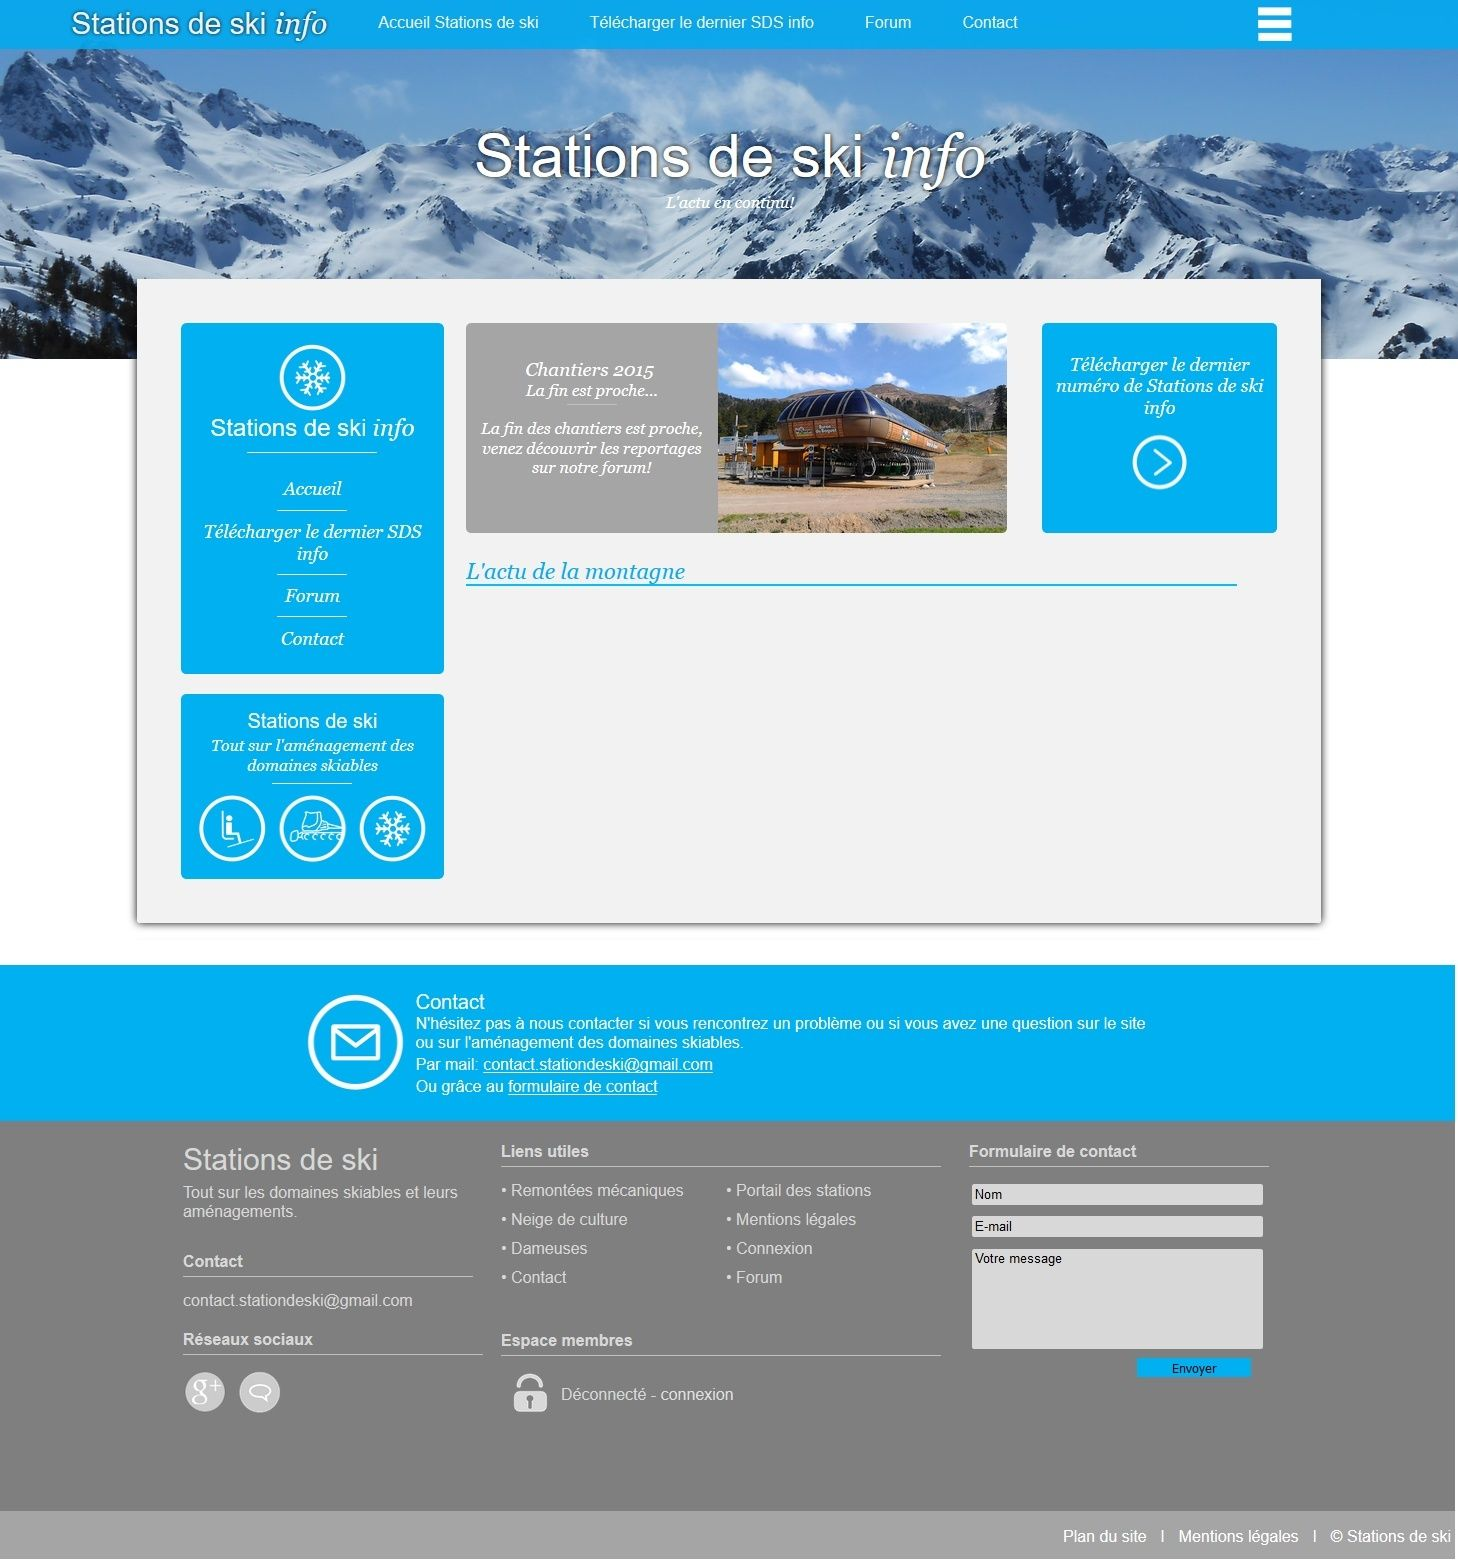 Stations de ski info Sds-in10